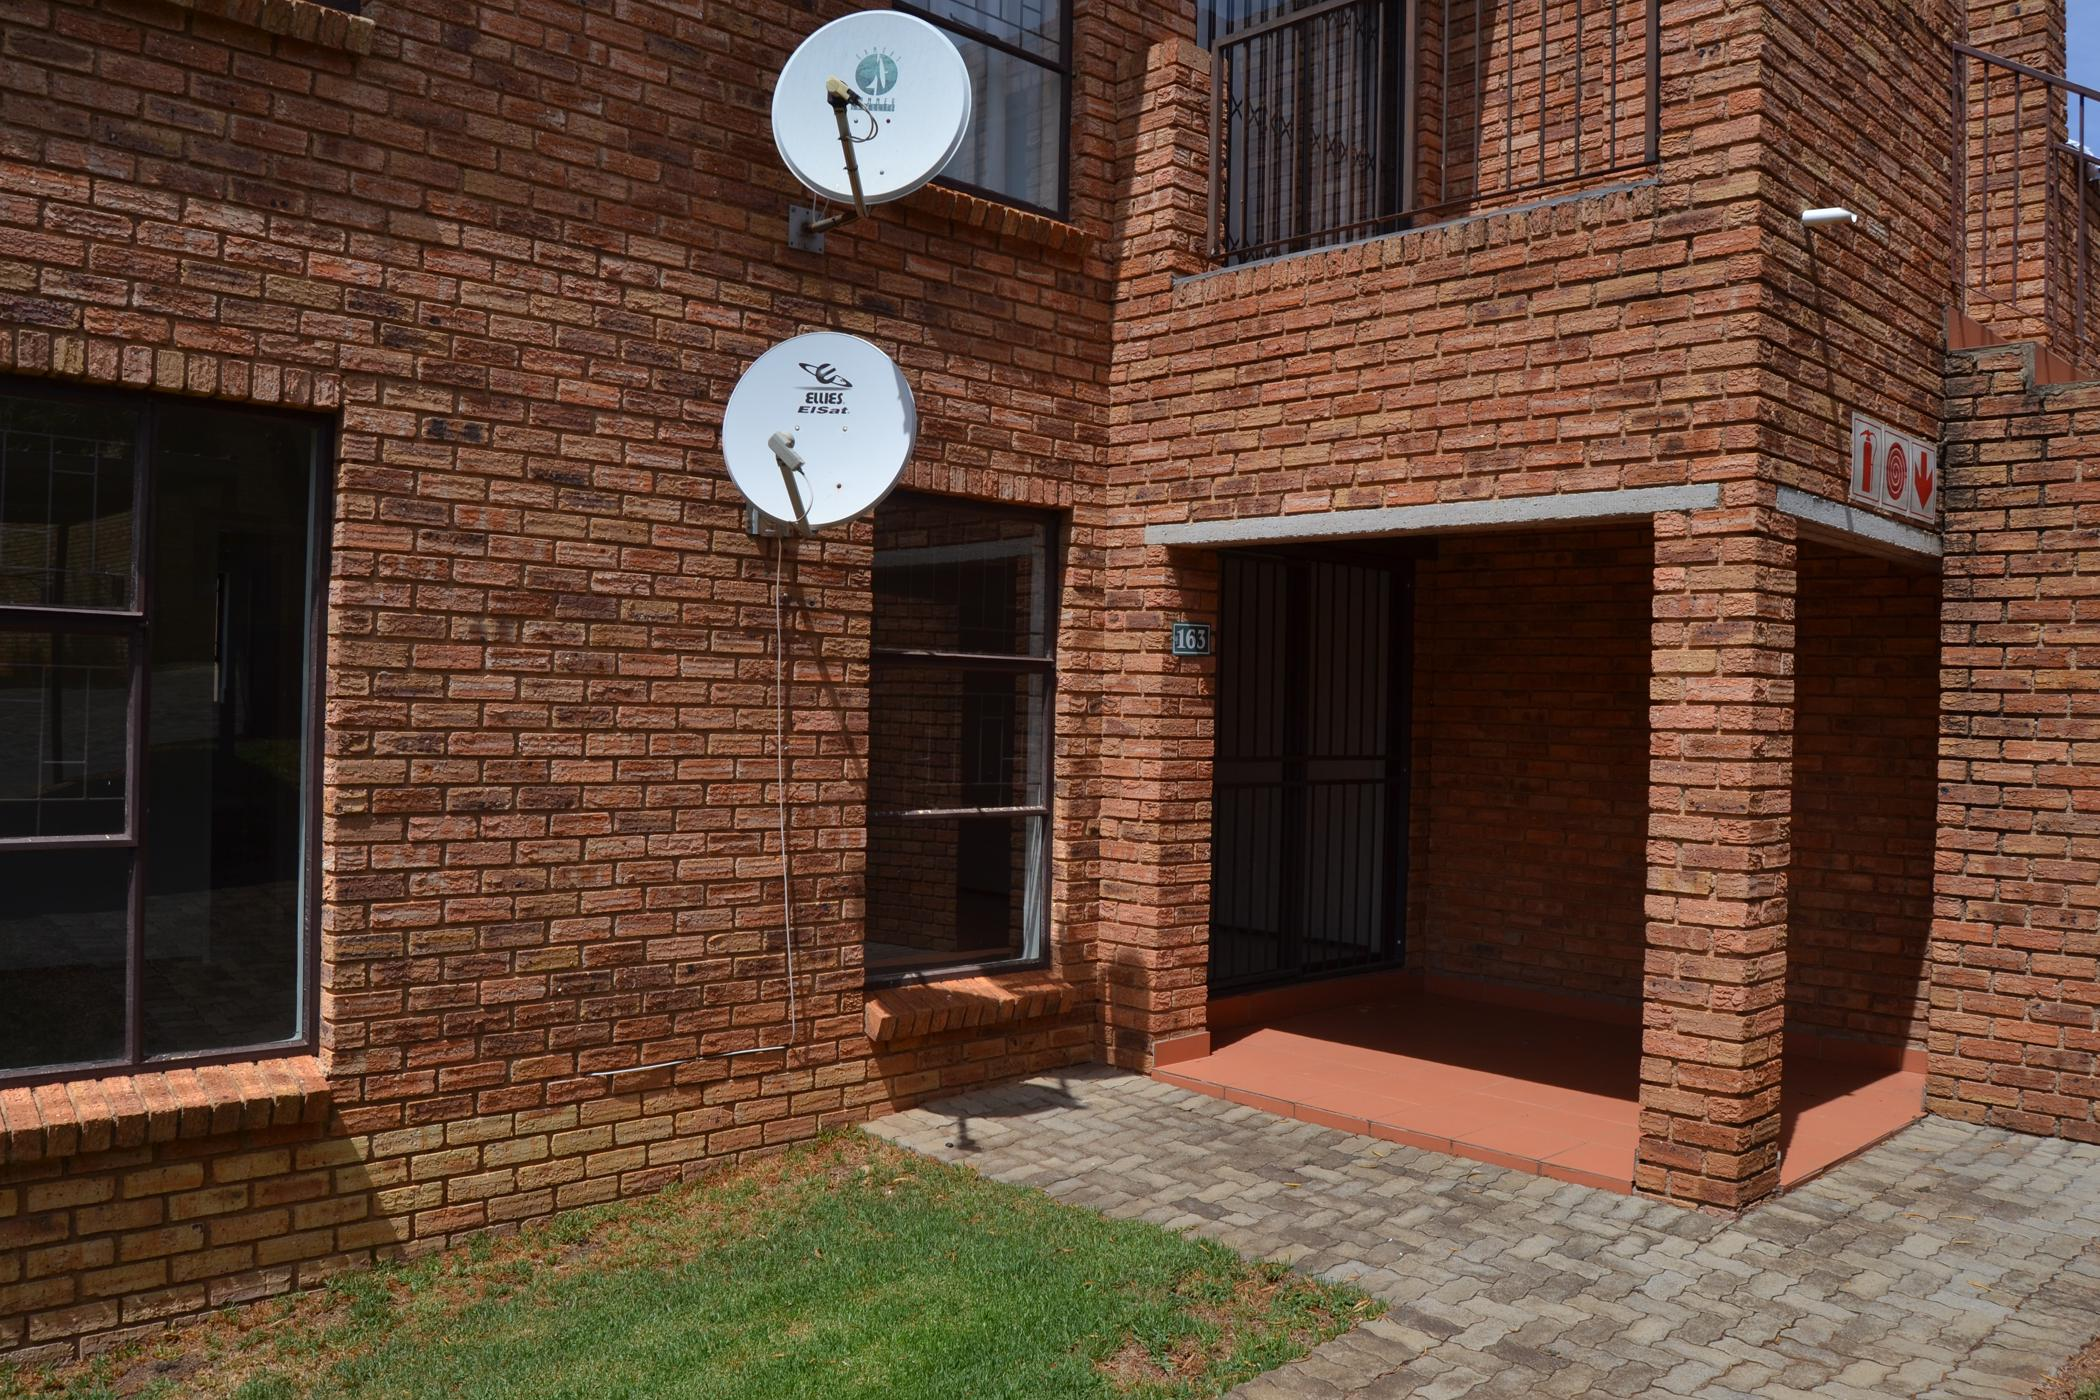 https://listing.pamgolding.co.za/images/properties/201812/1134514/H/1134514_H_1.jpg